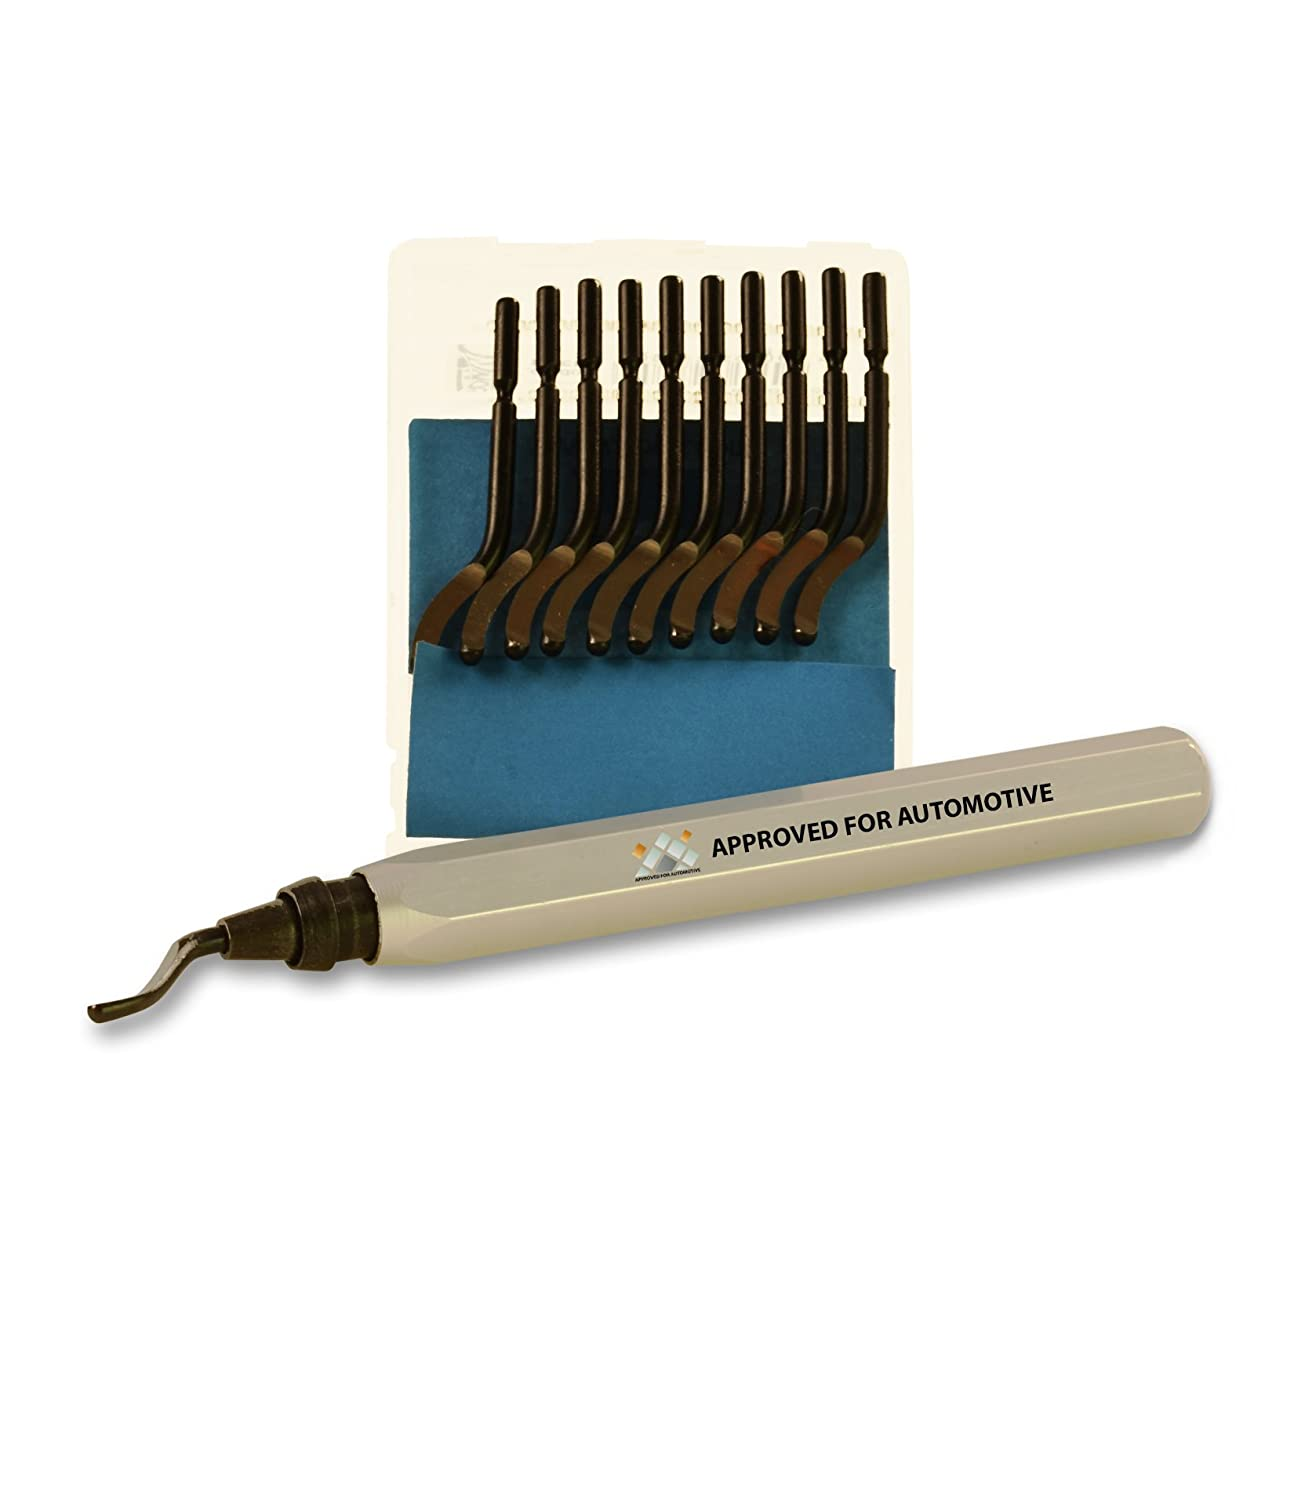 AFA Deburring tool with a Blade + Pack of 10 Extra Blades Approved for Automotive